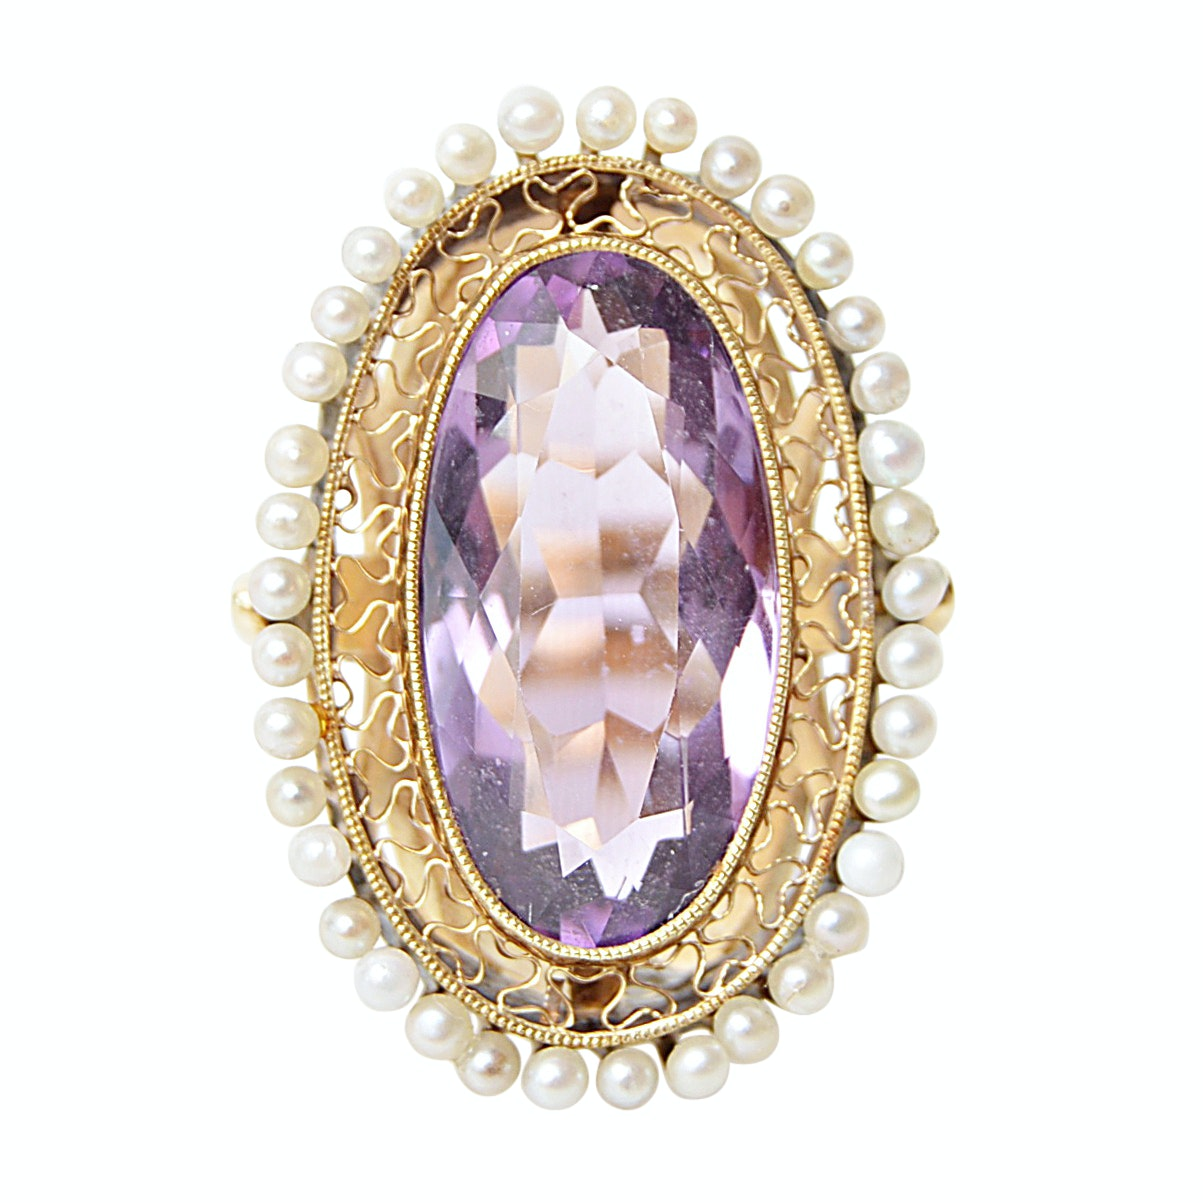 Vintage 14K Yellow Gold Amethyst and Seed Pearl Ring